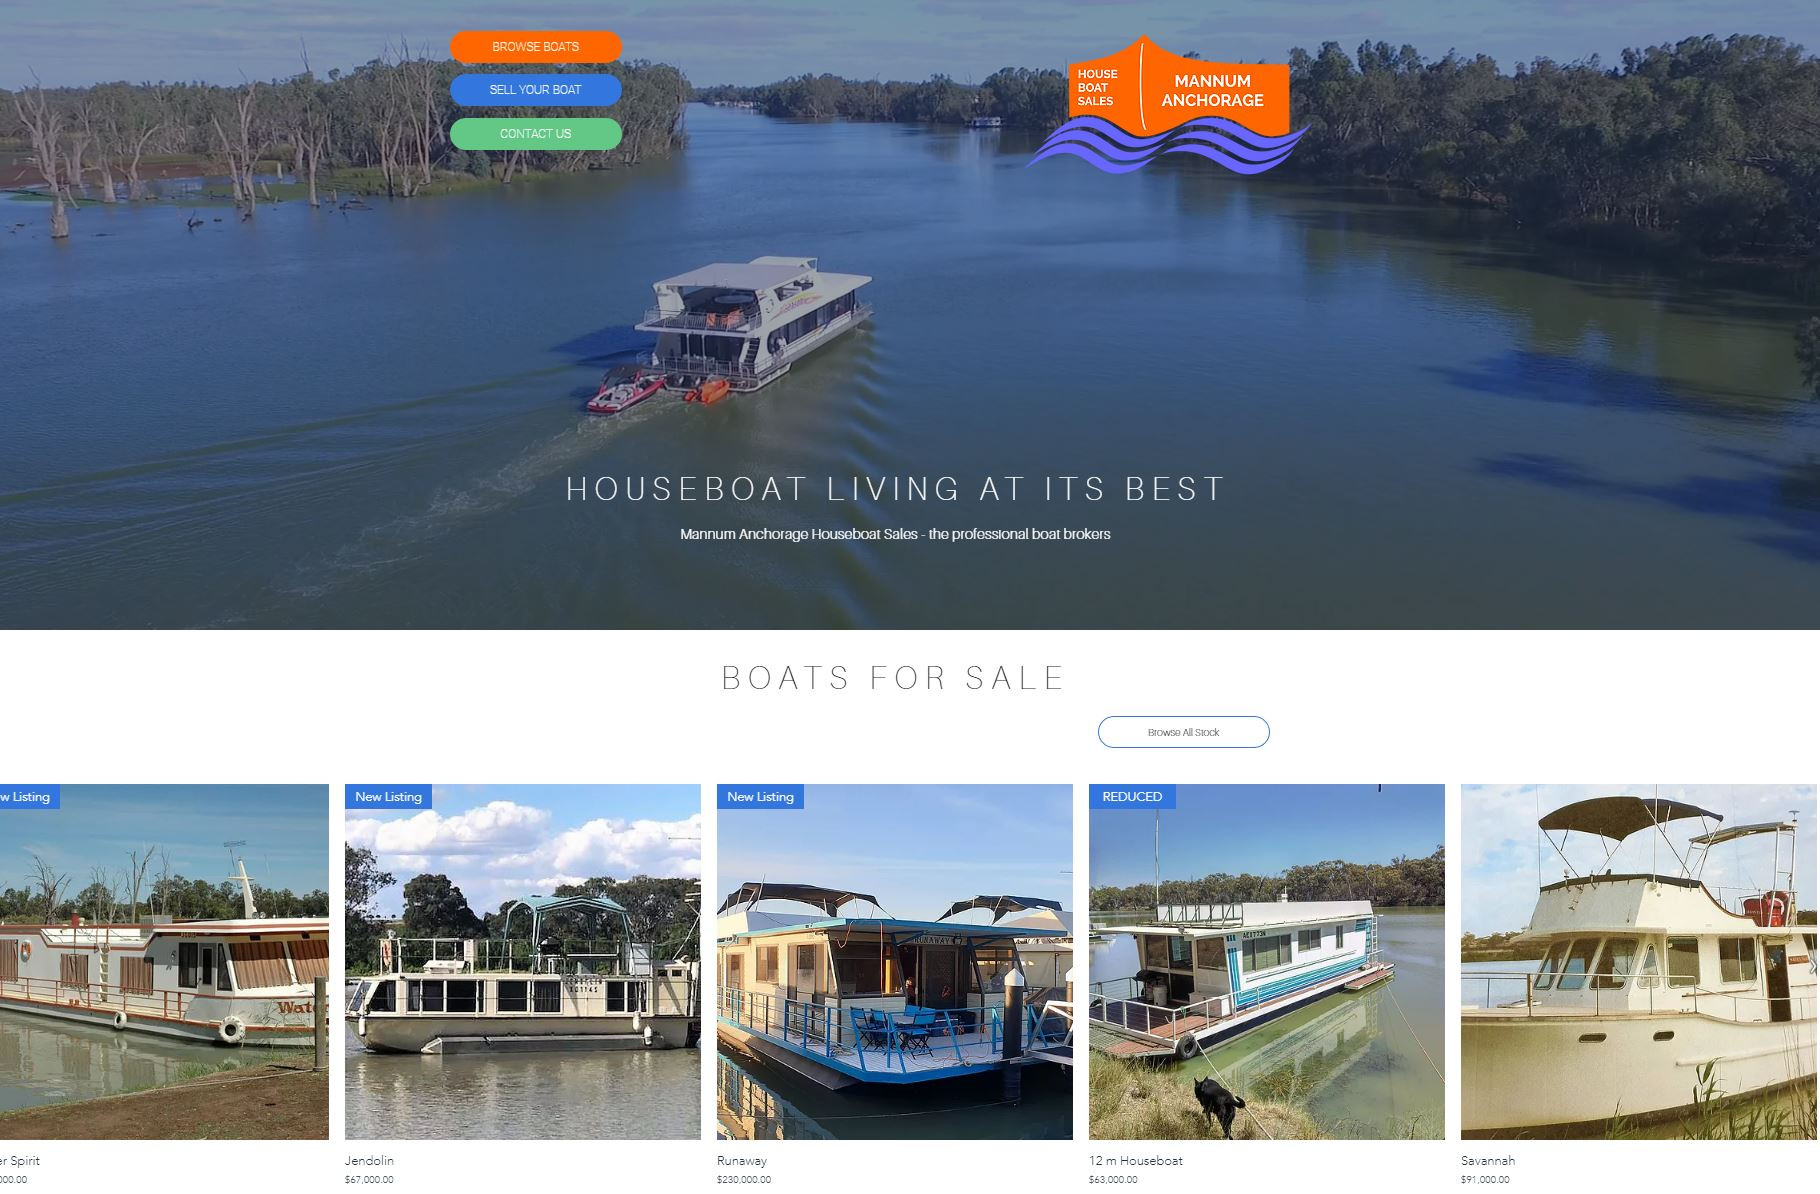 Mannum Anchorage | Houseboats for sale